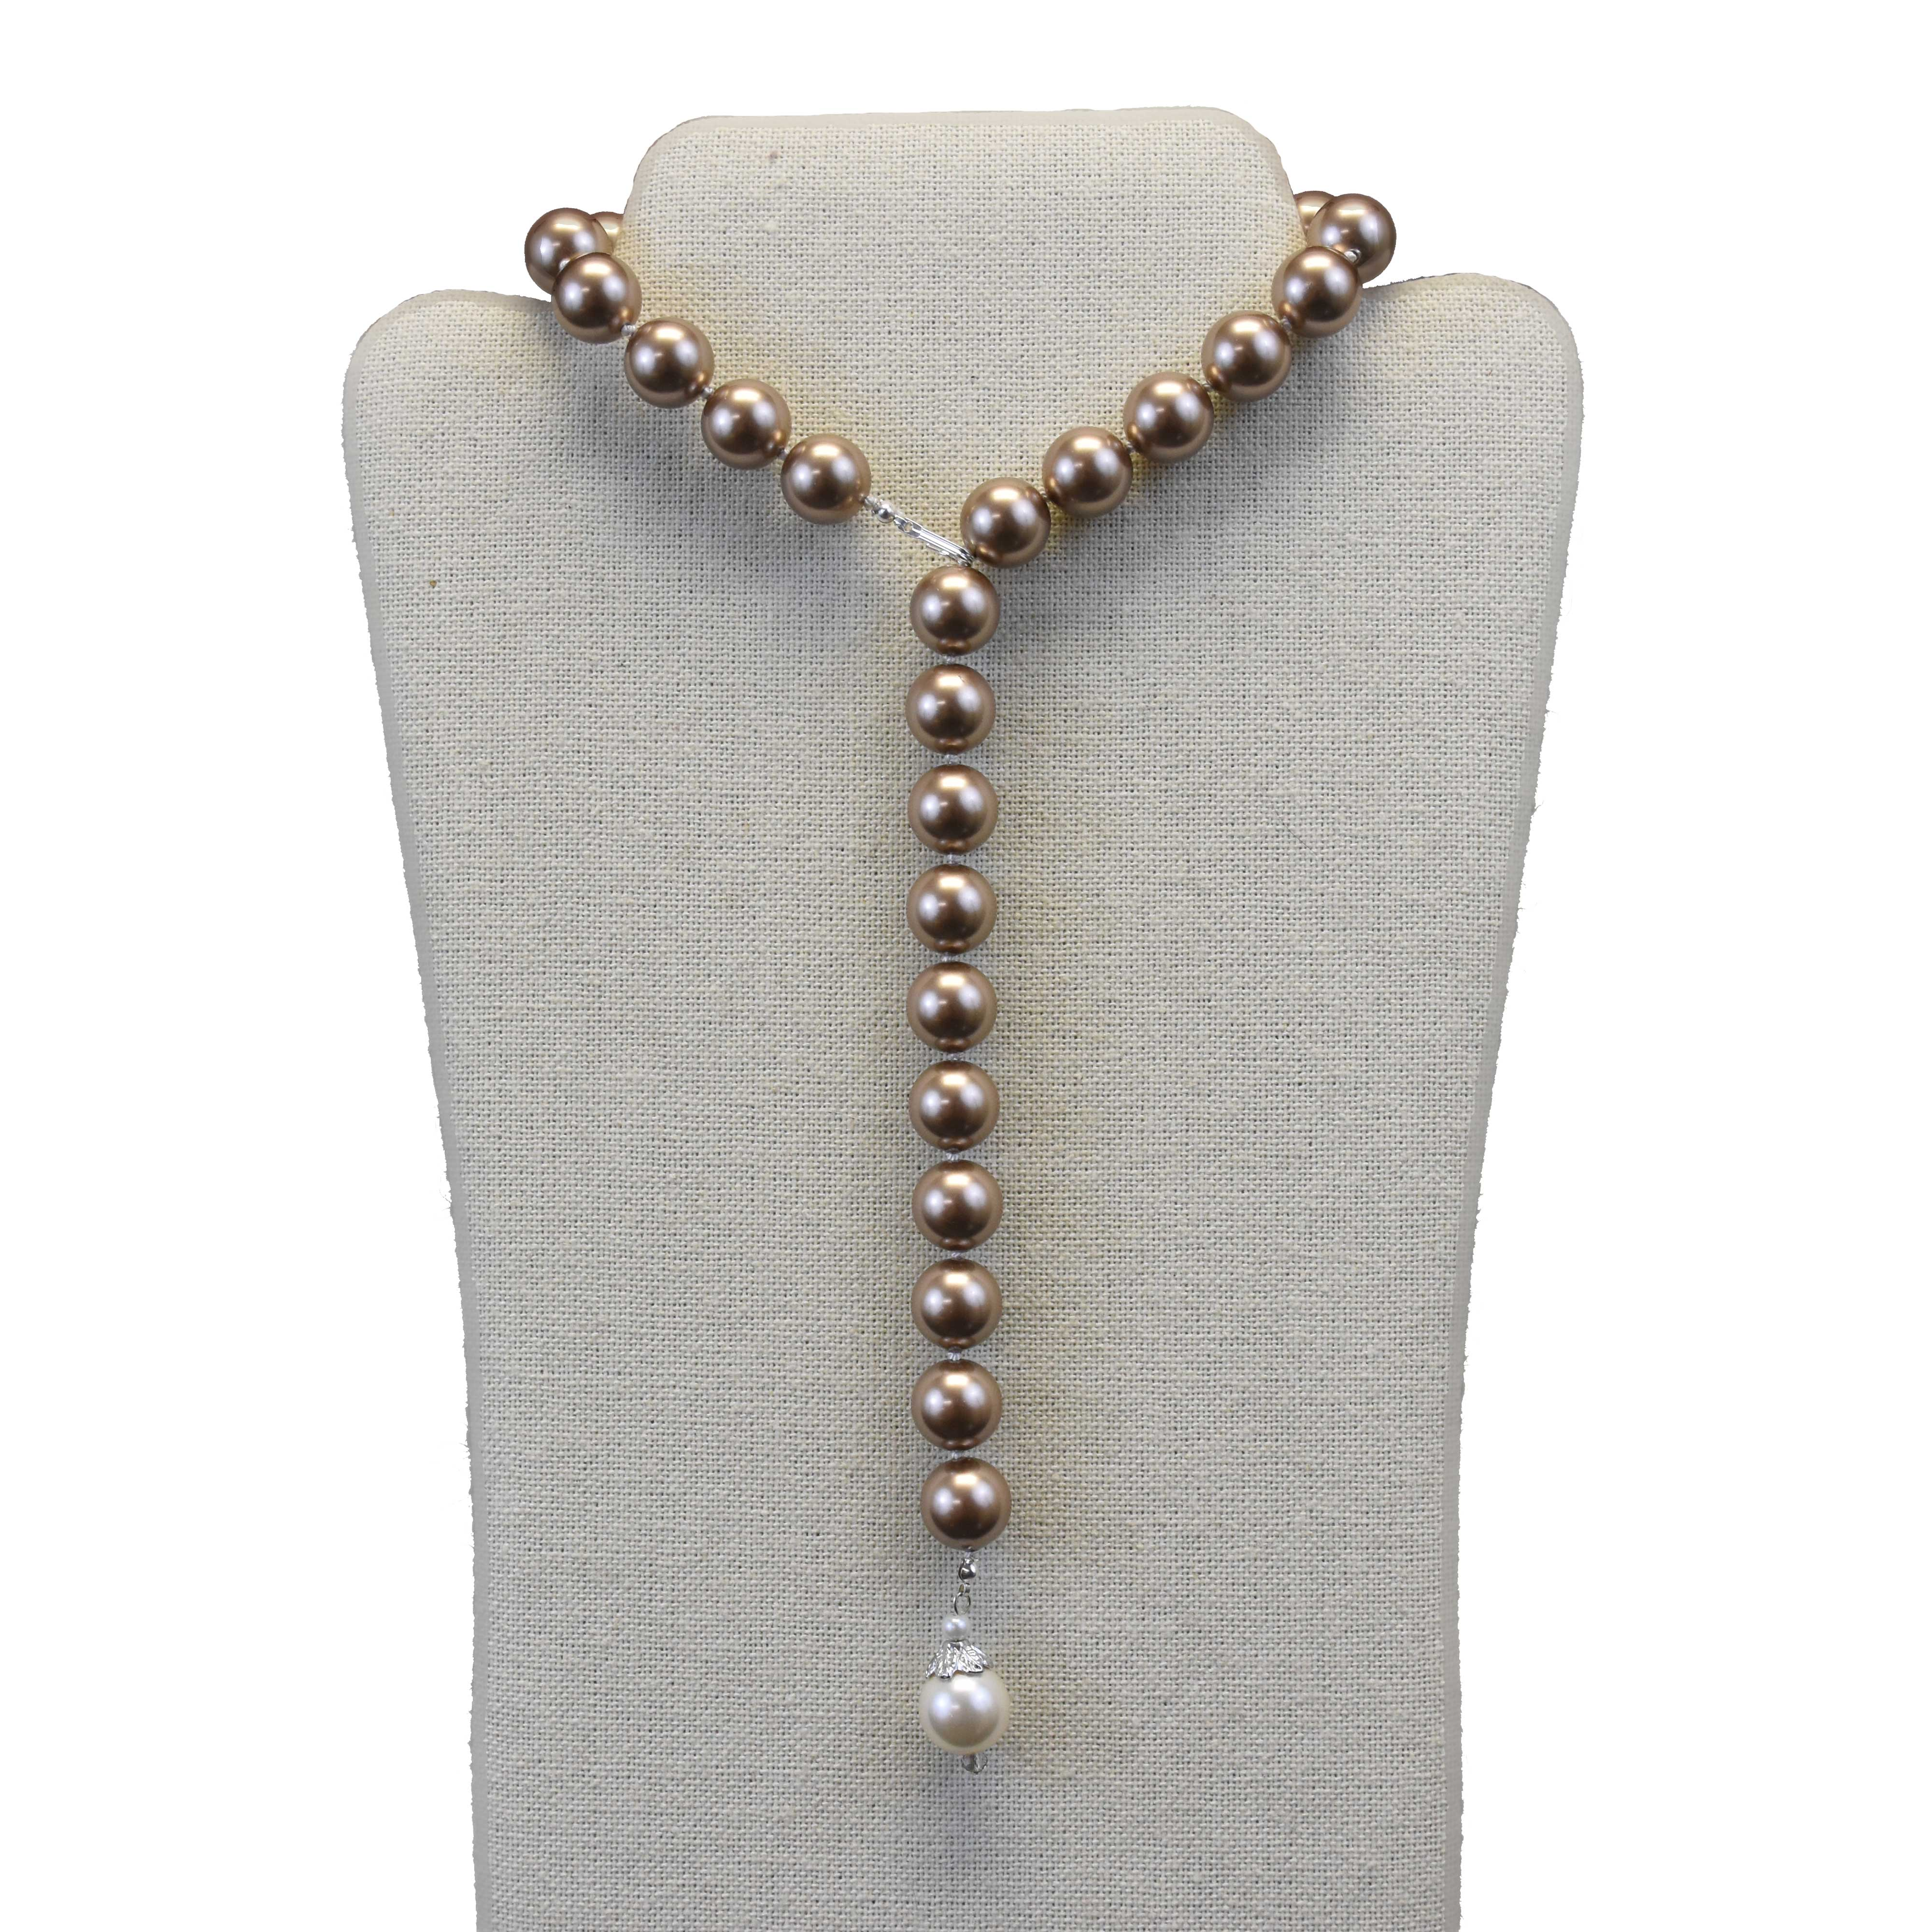 birks en rock pearl jewellery necklace silver and